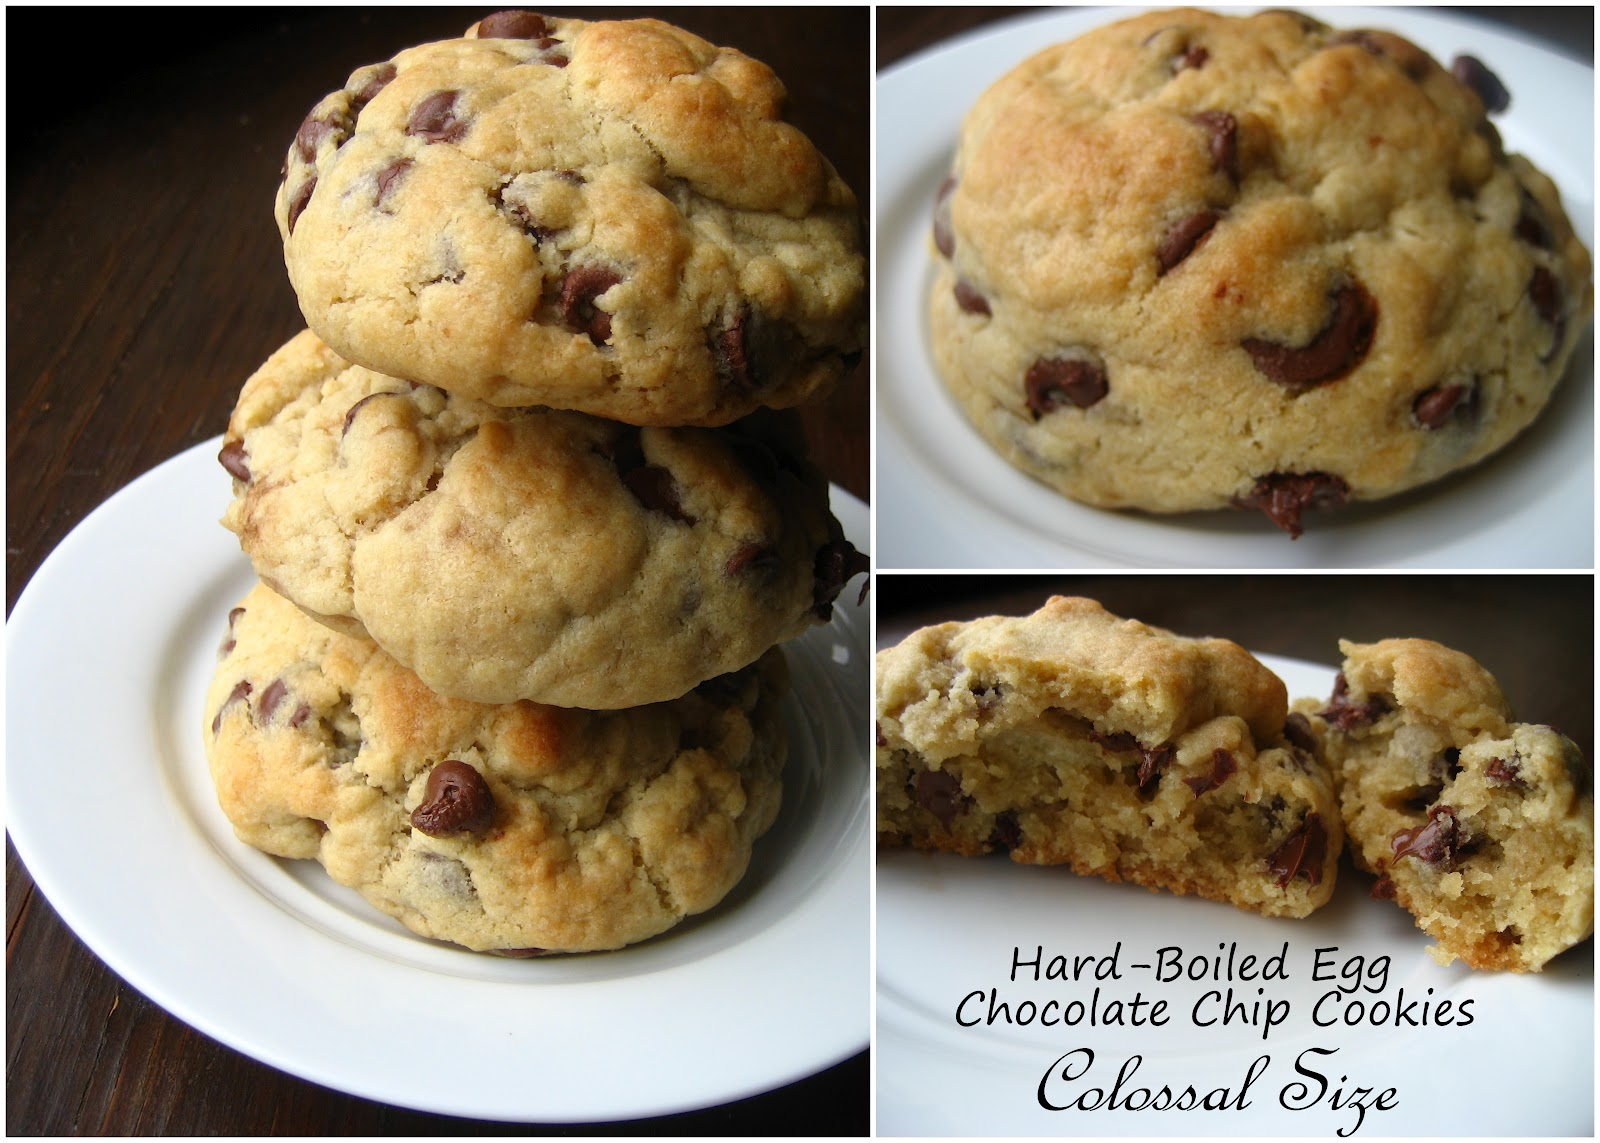 Home Cooking In Montana: Hard Boiled Egg Chocolate Chip Cookies ...